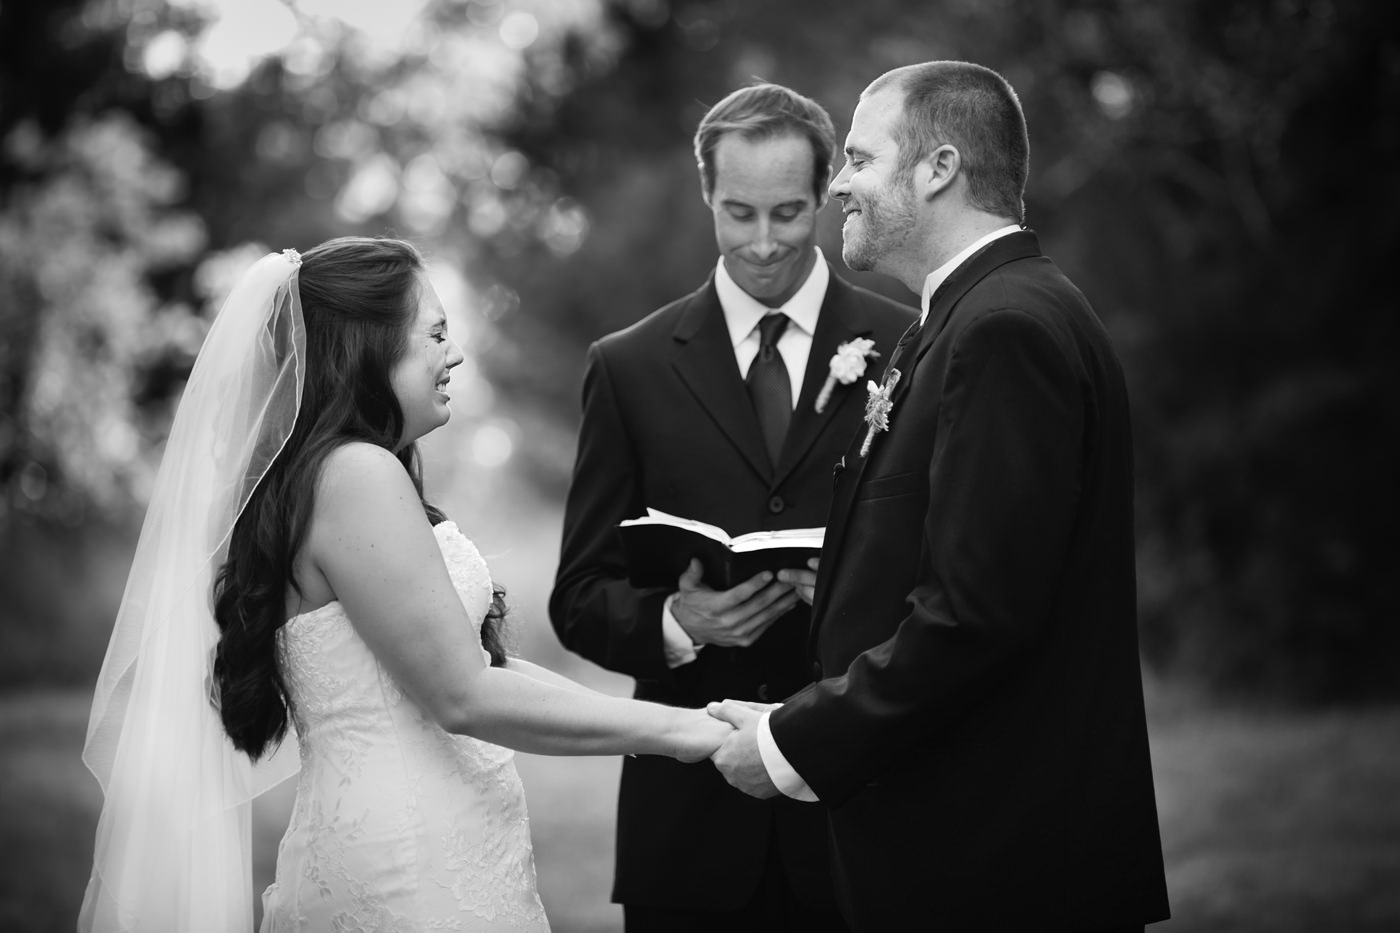 wedding-photographer-jeremy-minnerick-6